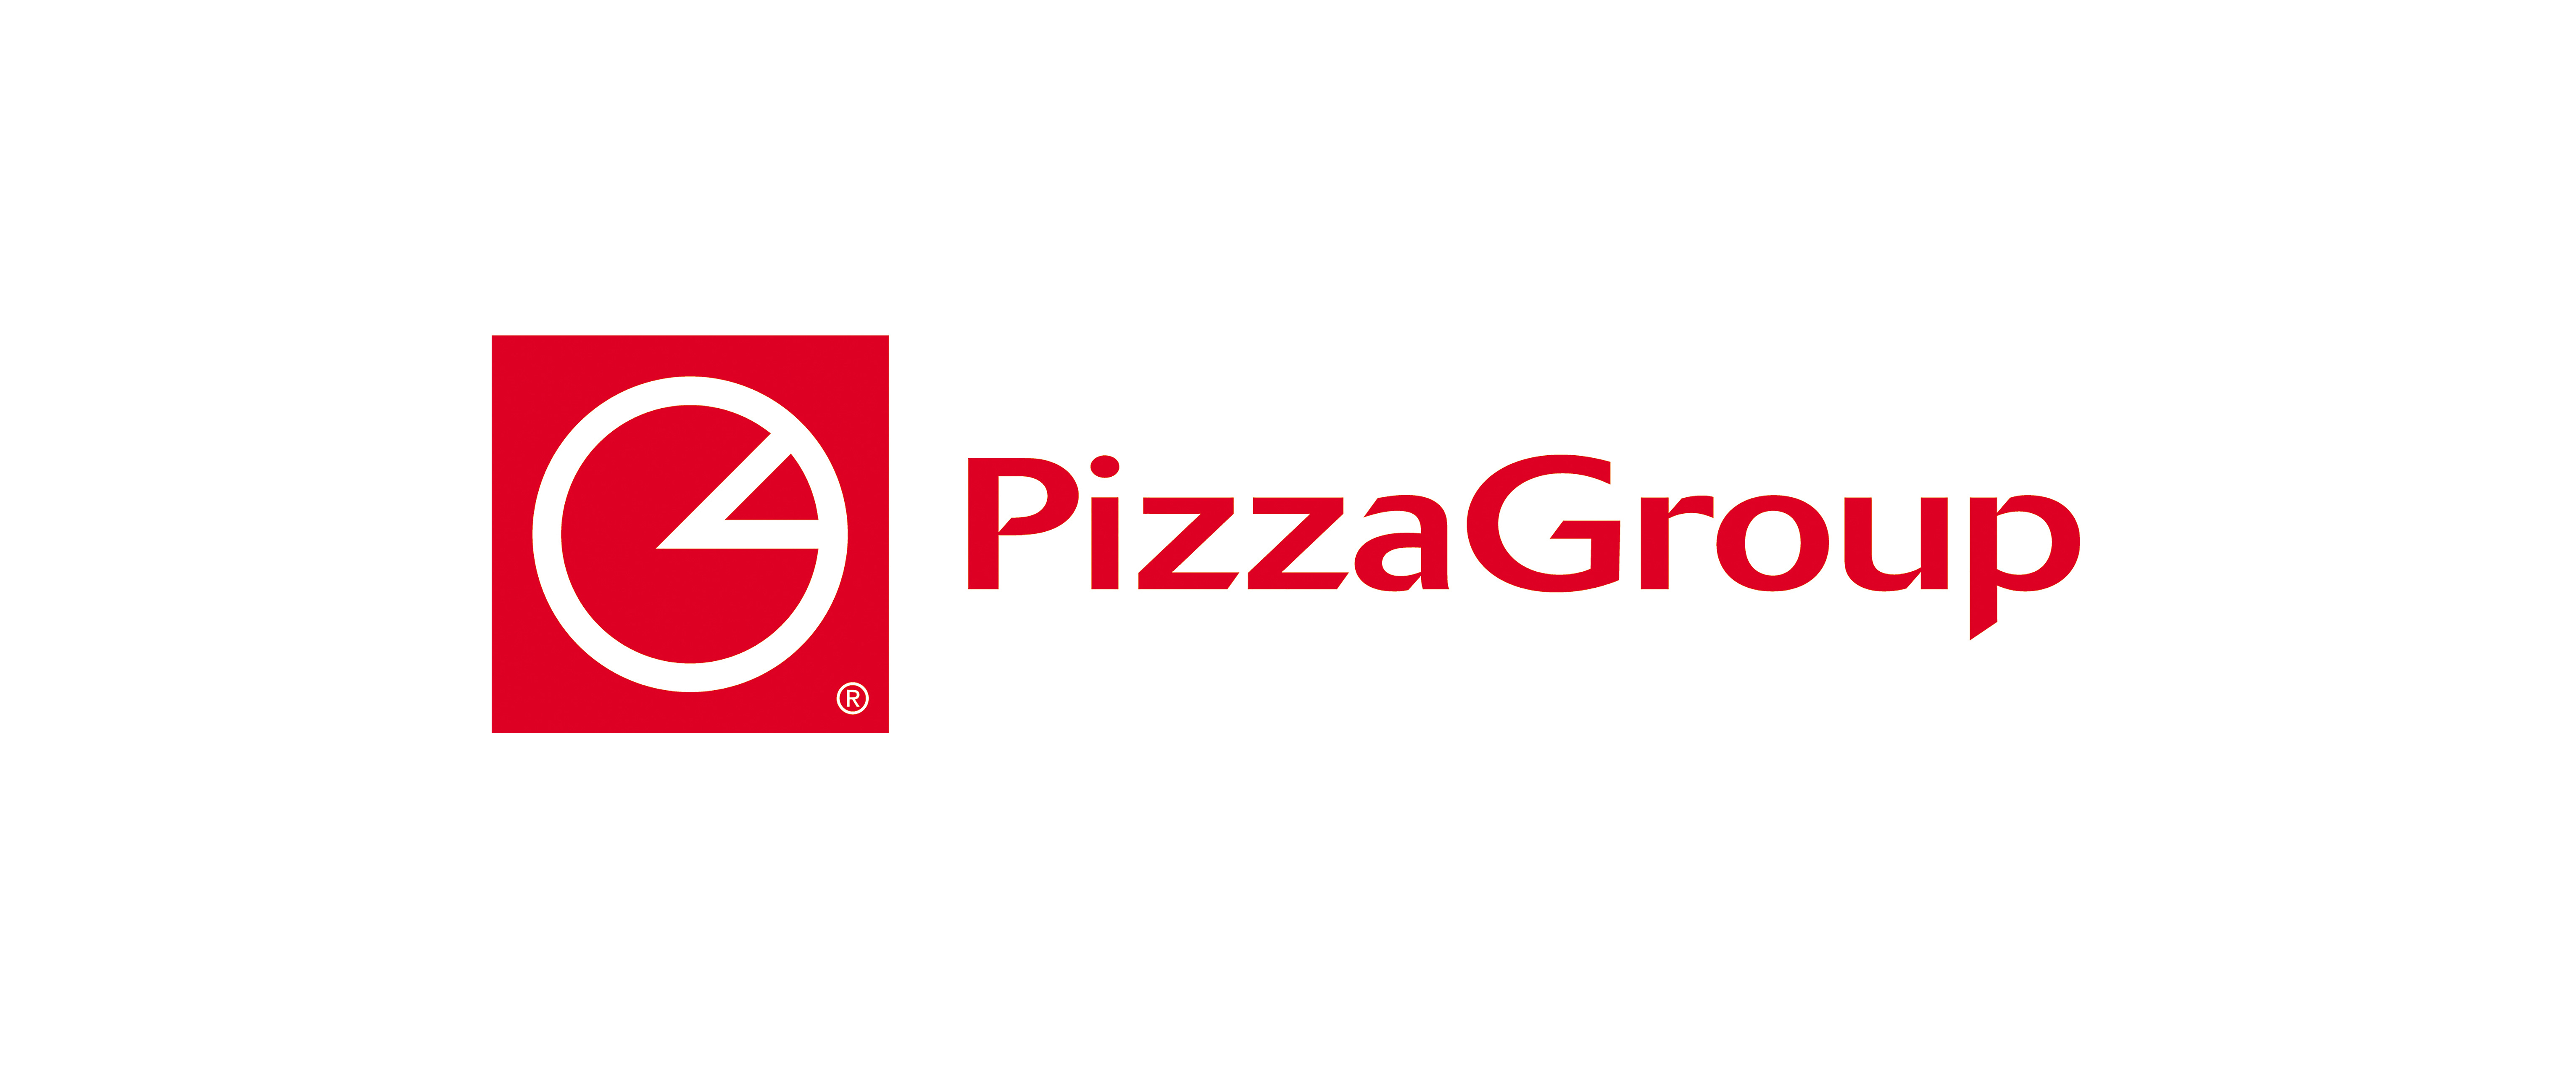 Pizza Group